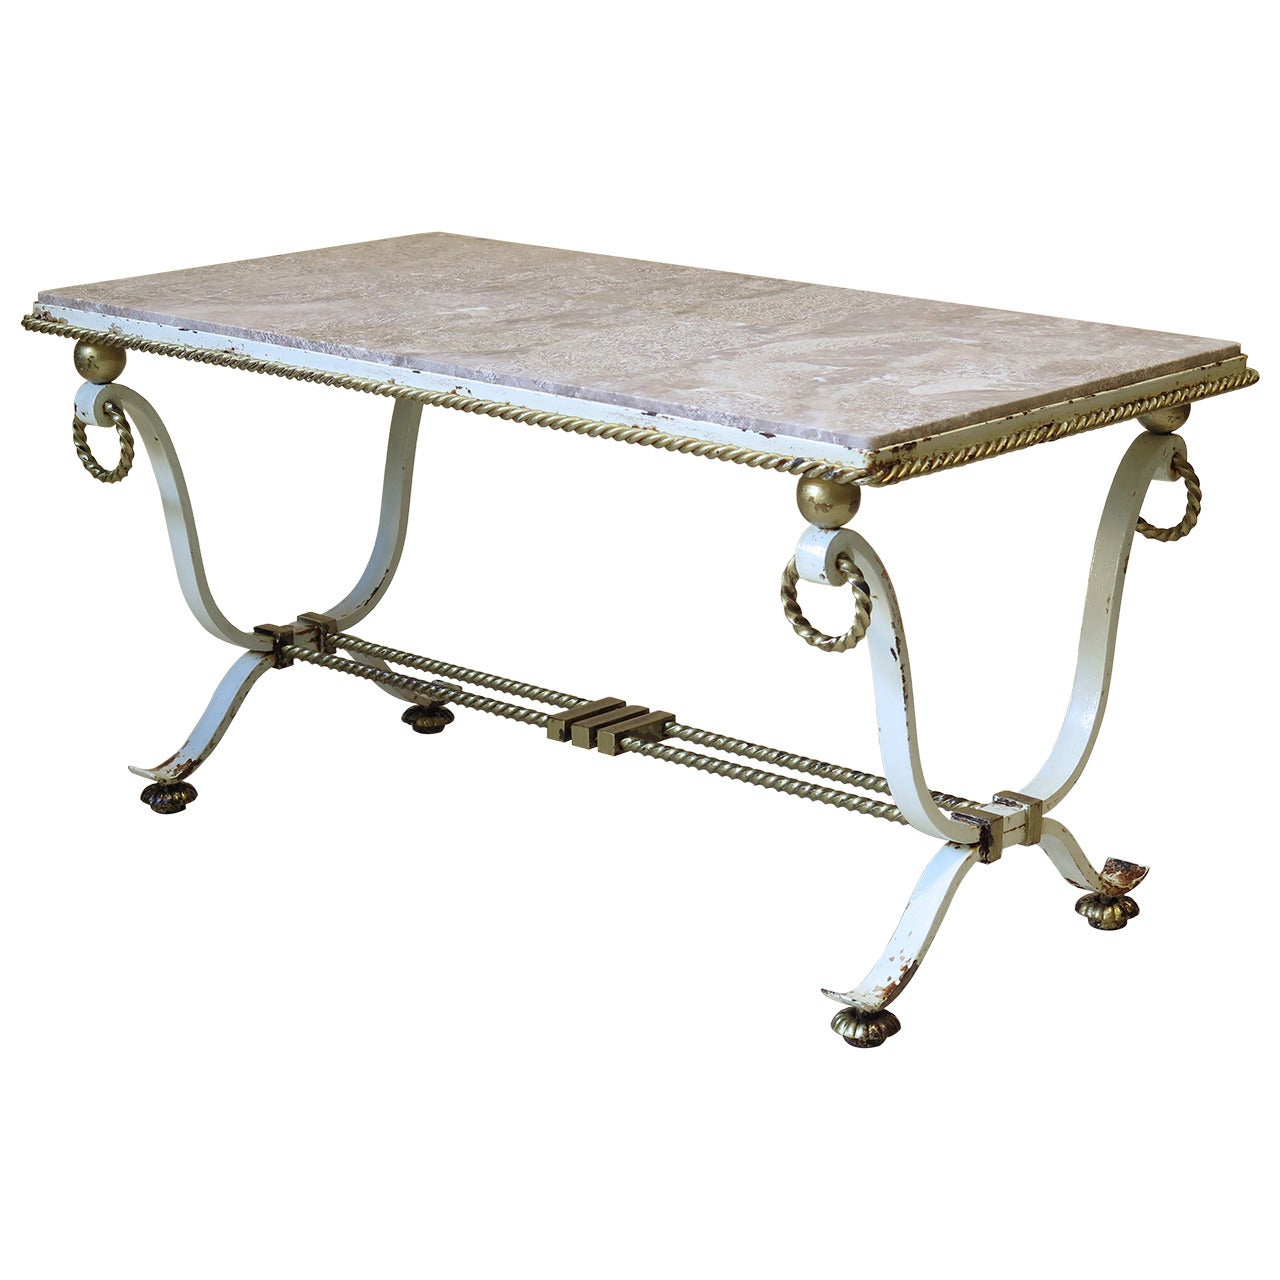 Art Deco Coffee Table Attributed to Poillerat, France, 1940s